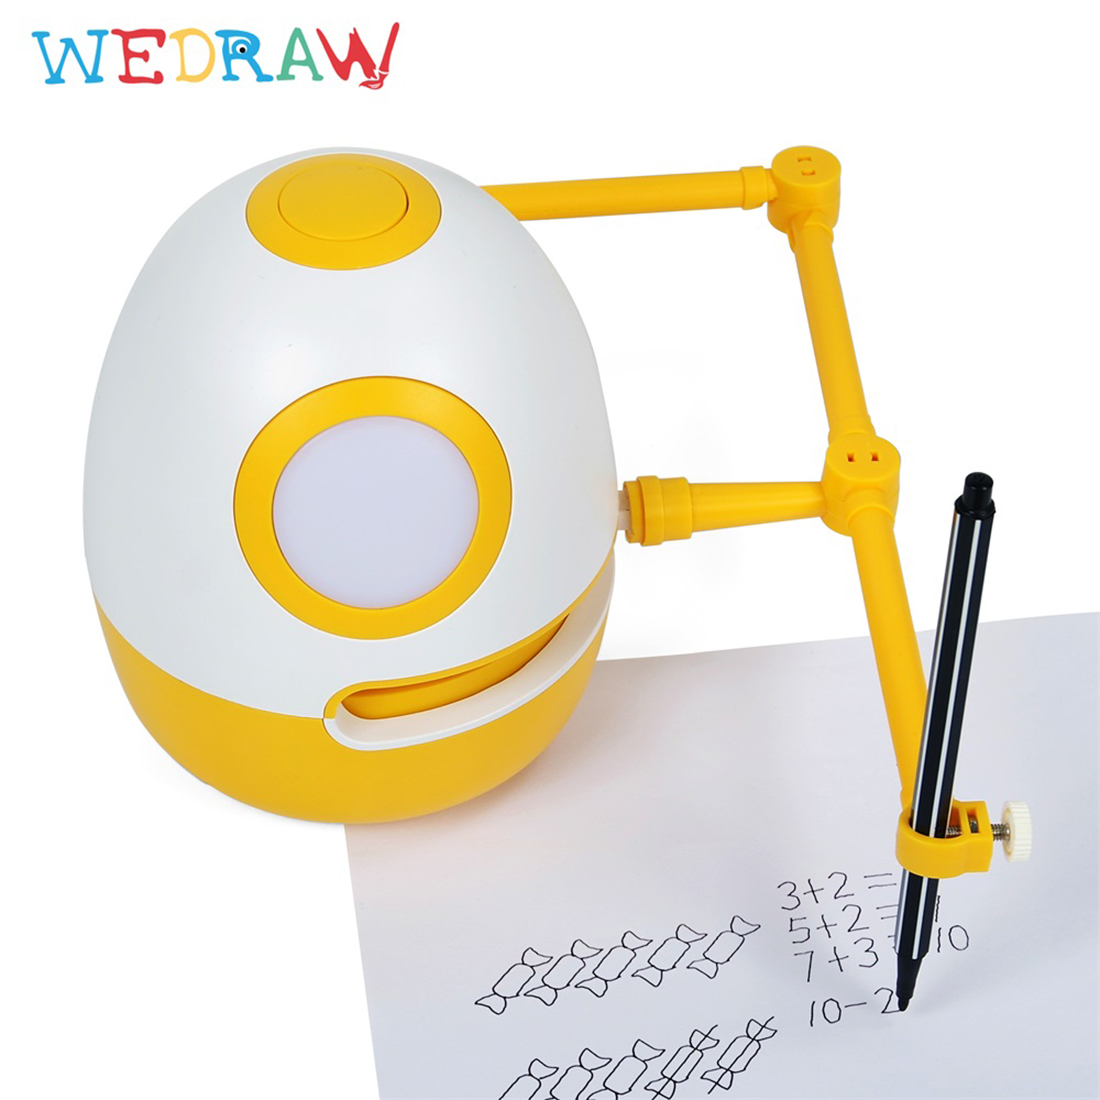 Wedraw Eggy Children Drawing Robot Genius Kit Learning Educational Tech Toys Electronic Pets Electronic Toys